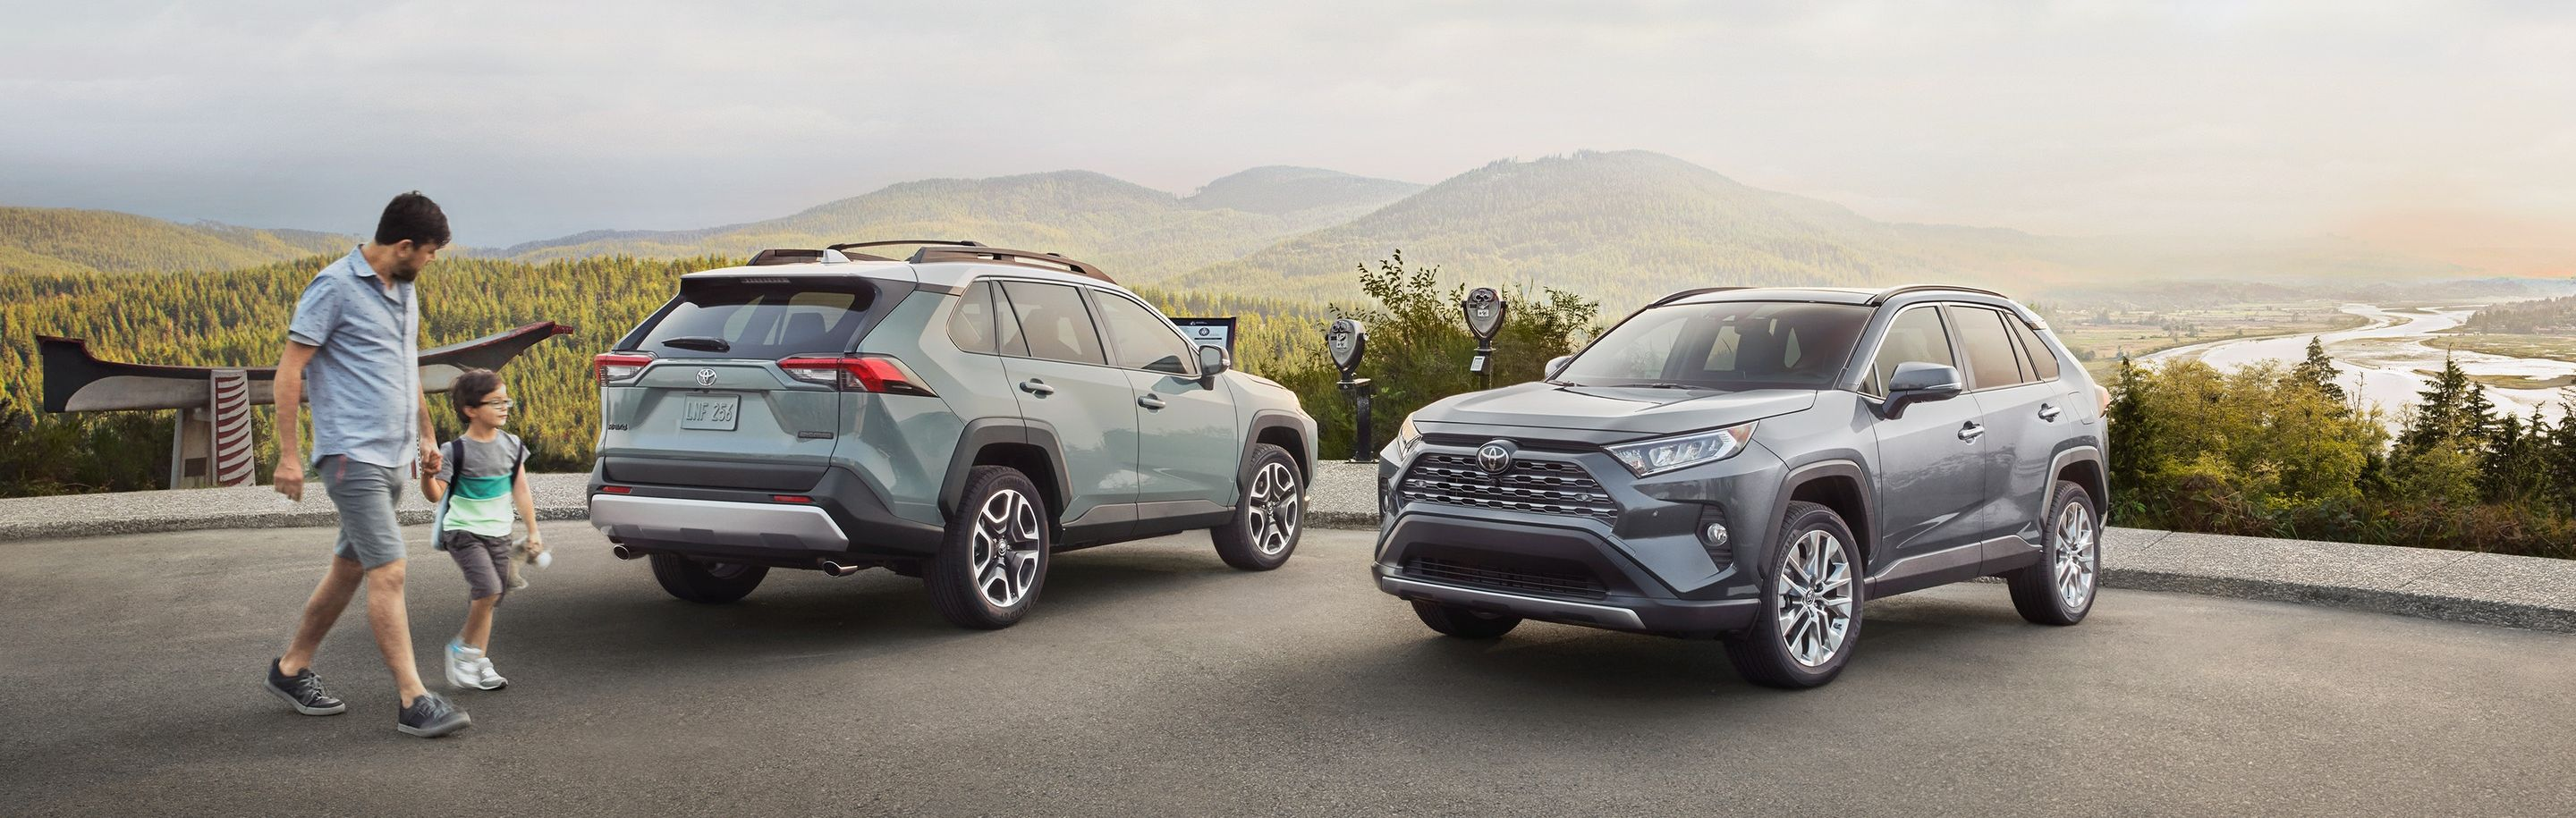 2019 Toyota RAV4 for Sale near Chicago, IL